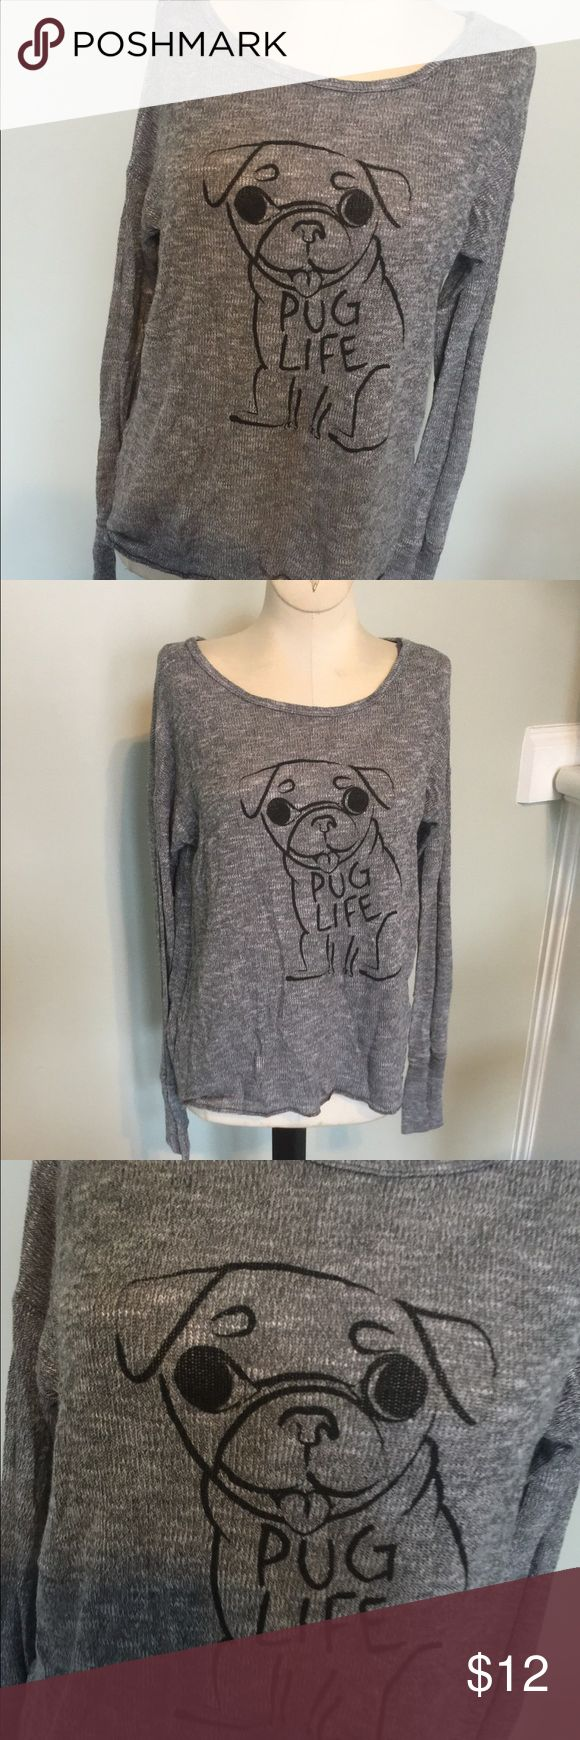 Aeropostale Bethany Mota Pug Life Sweater Super cute Lite weight sweater by Bethany Mota for Aeropostale,Sz XS.I think my daughter only wore this once.Very good condition. Aeropostale Sweaters Crew & Scoop Necks